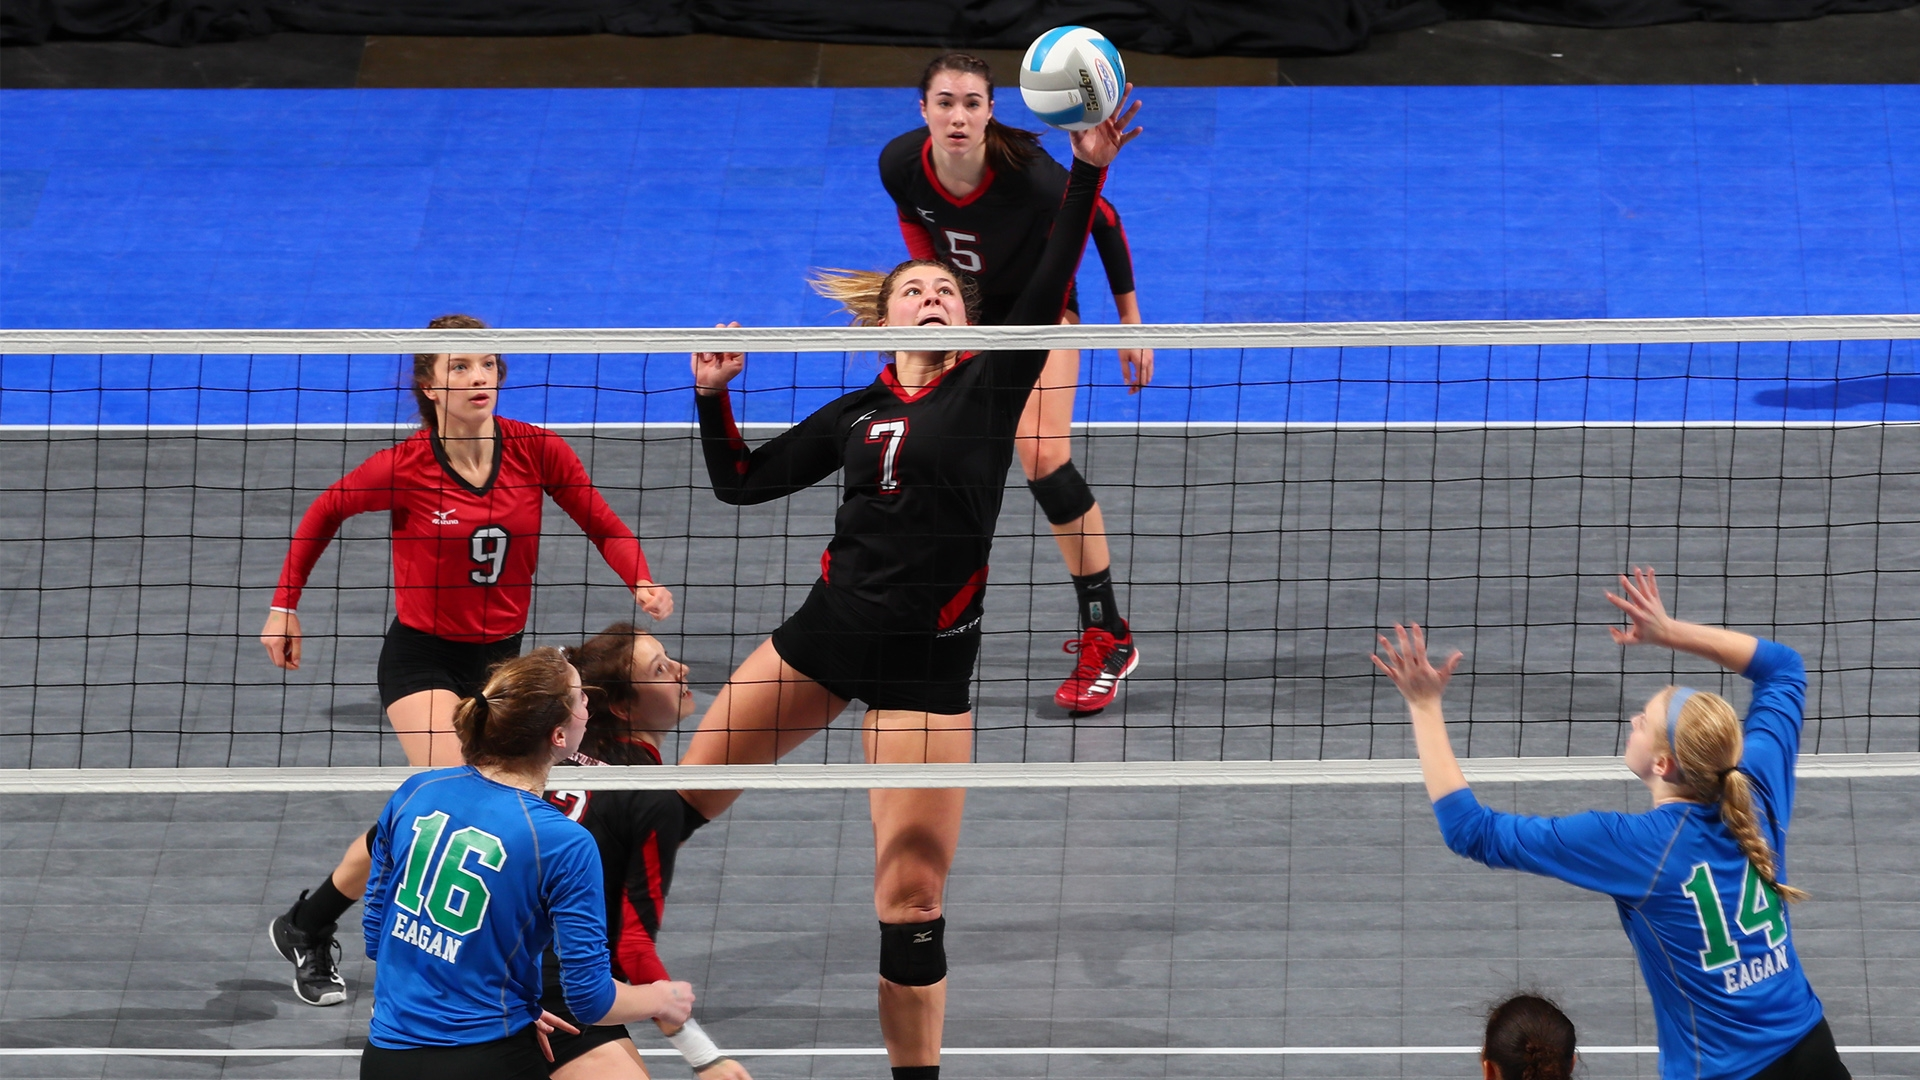 The 2018 MSHSL Girls' Volleyball State Tournament took place Nov. 8-10, 2018 at Xcel Energy Center. Click the link for more information.